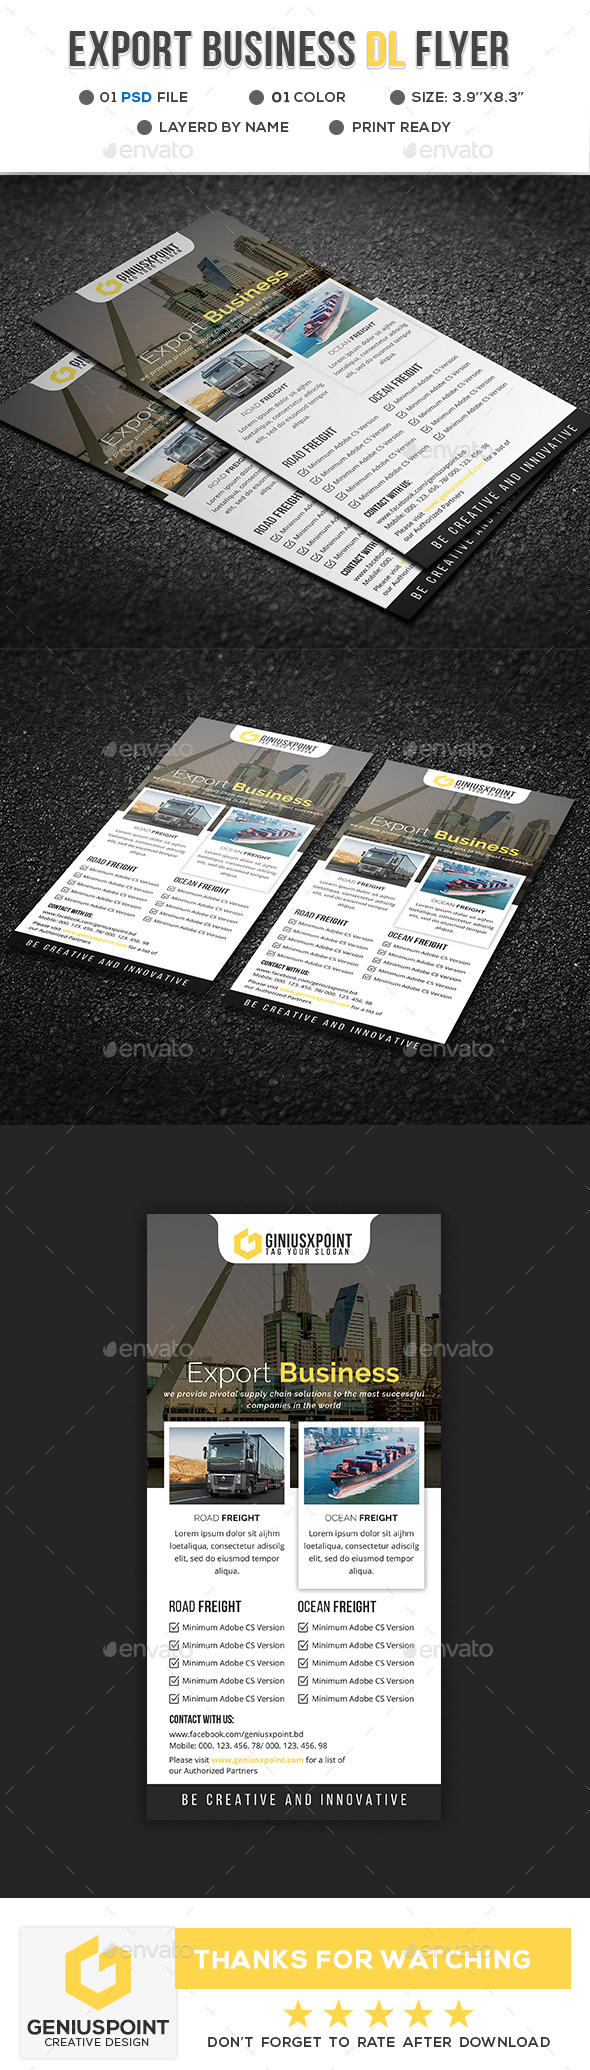 Export Business DL Flyer - Flyers Print Templates